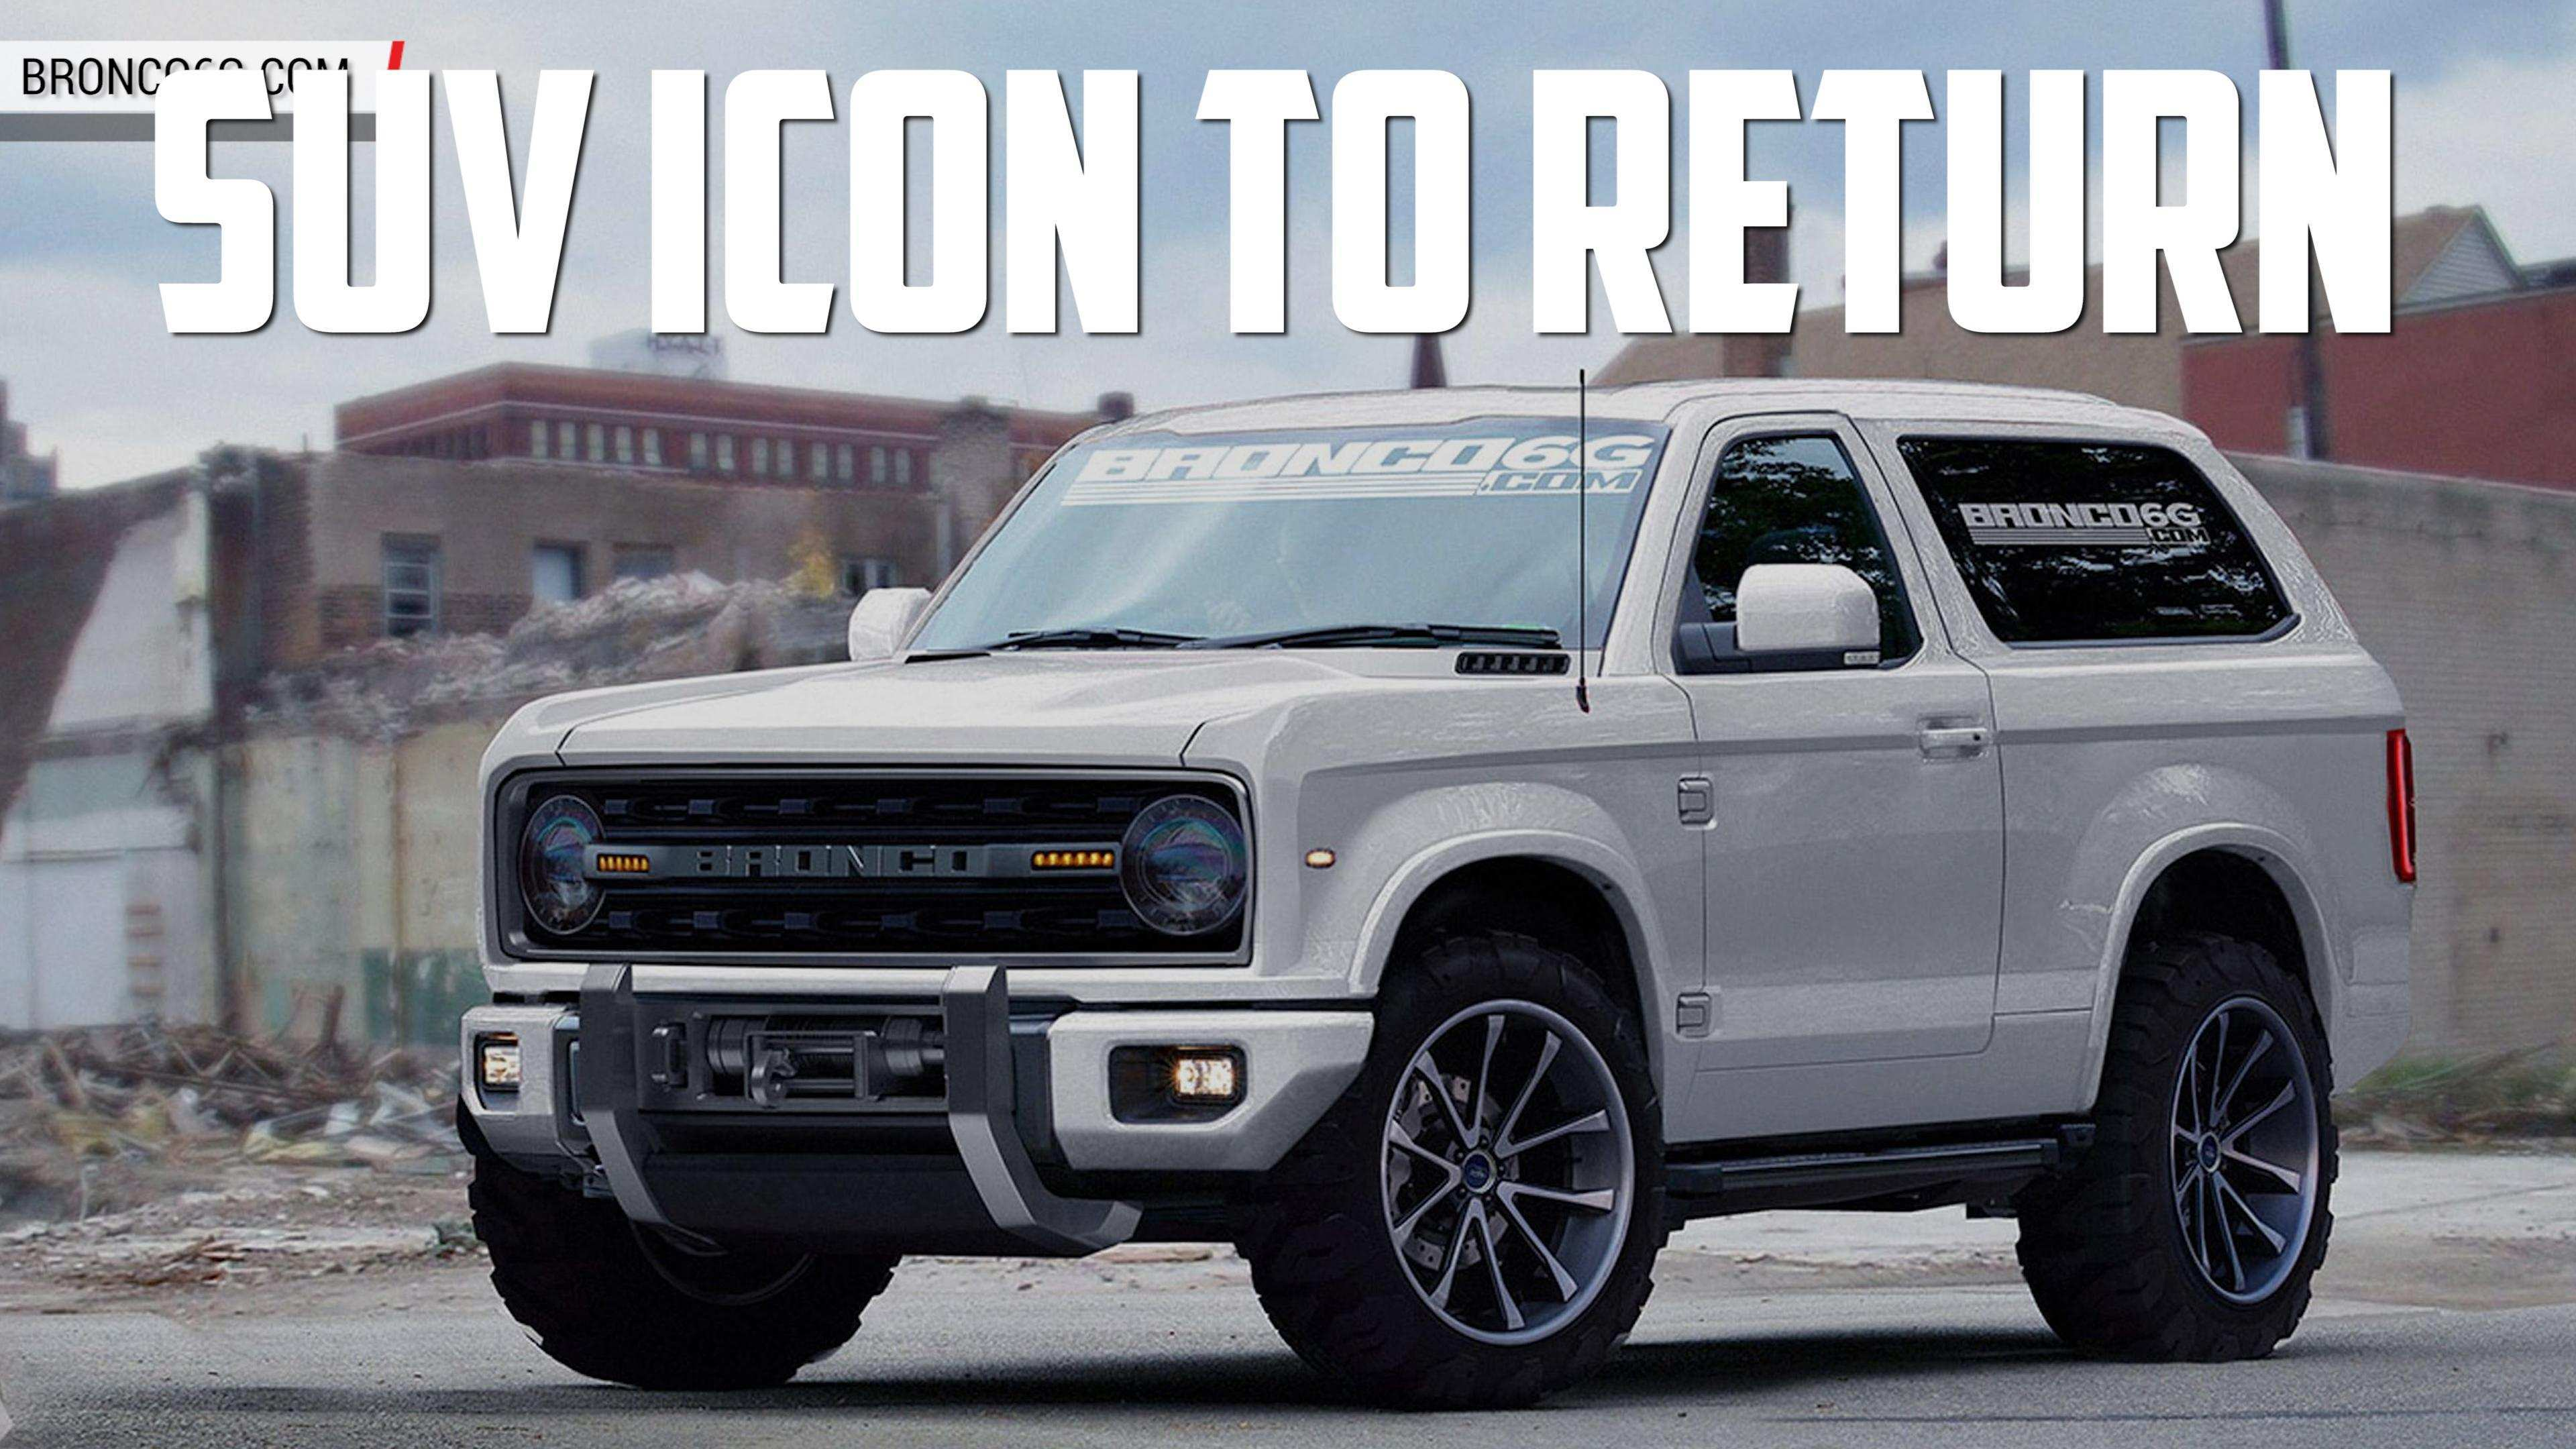 76 New When Can You Buy A 2020 Ford Bronco Pricing for When Can You Buy A 2020 Ford Bronco